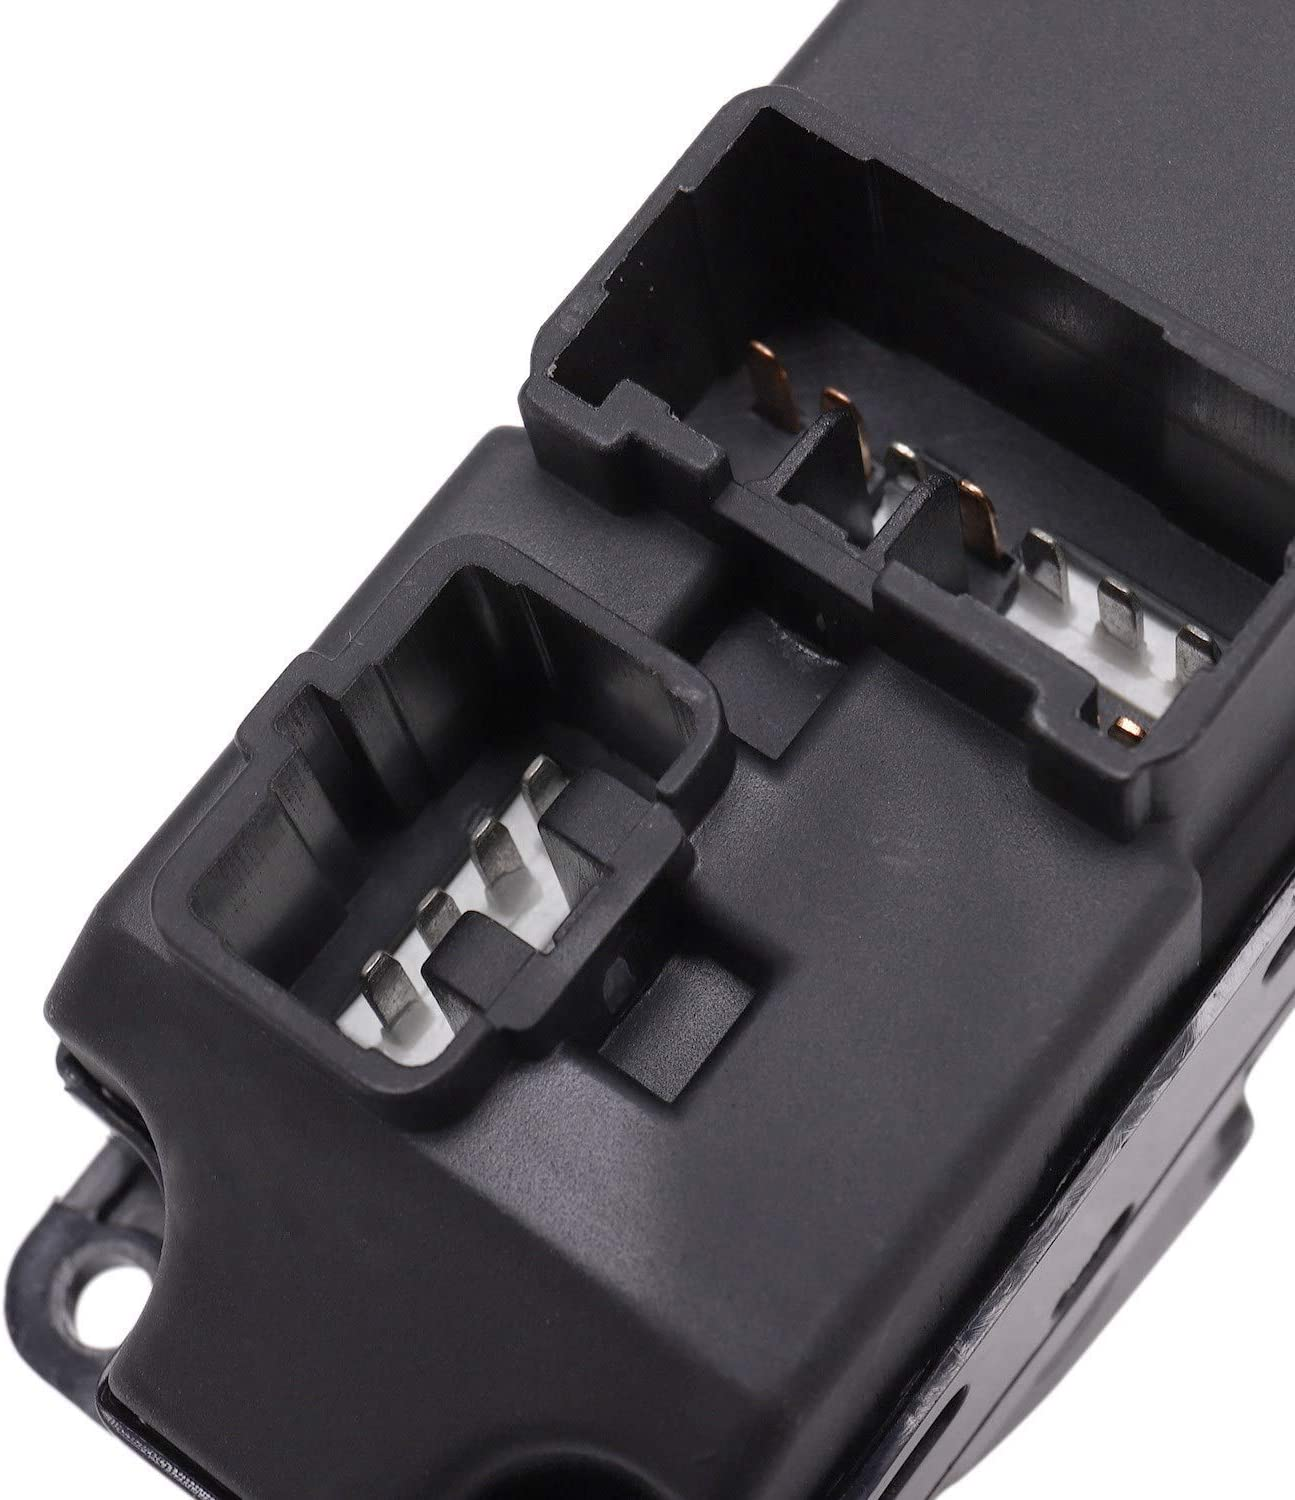 Nrpfell New Left Driver Side Electric Power Window Switch Fit for 6 03-12 GJ6A-66-350A